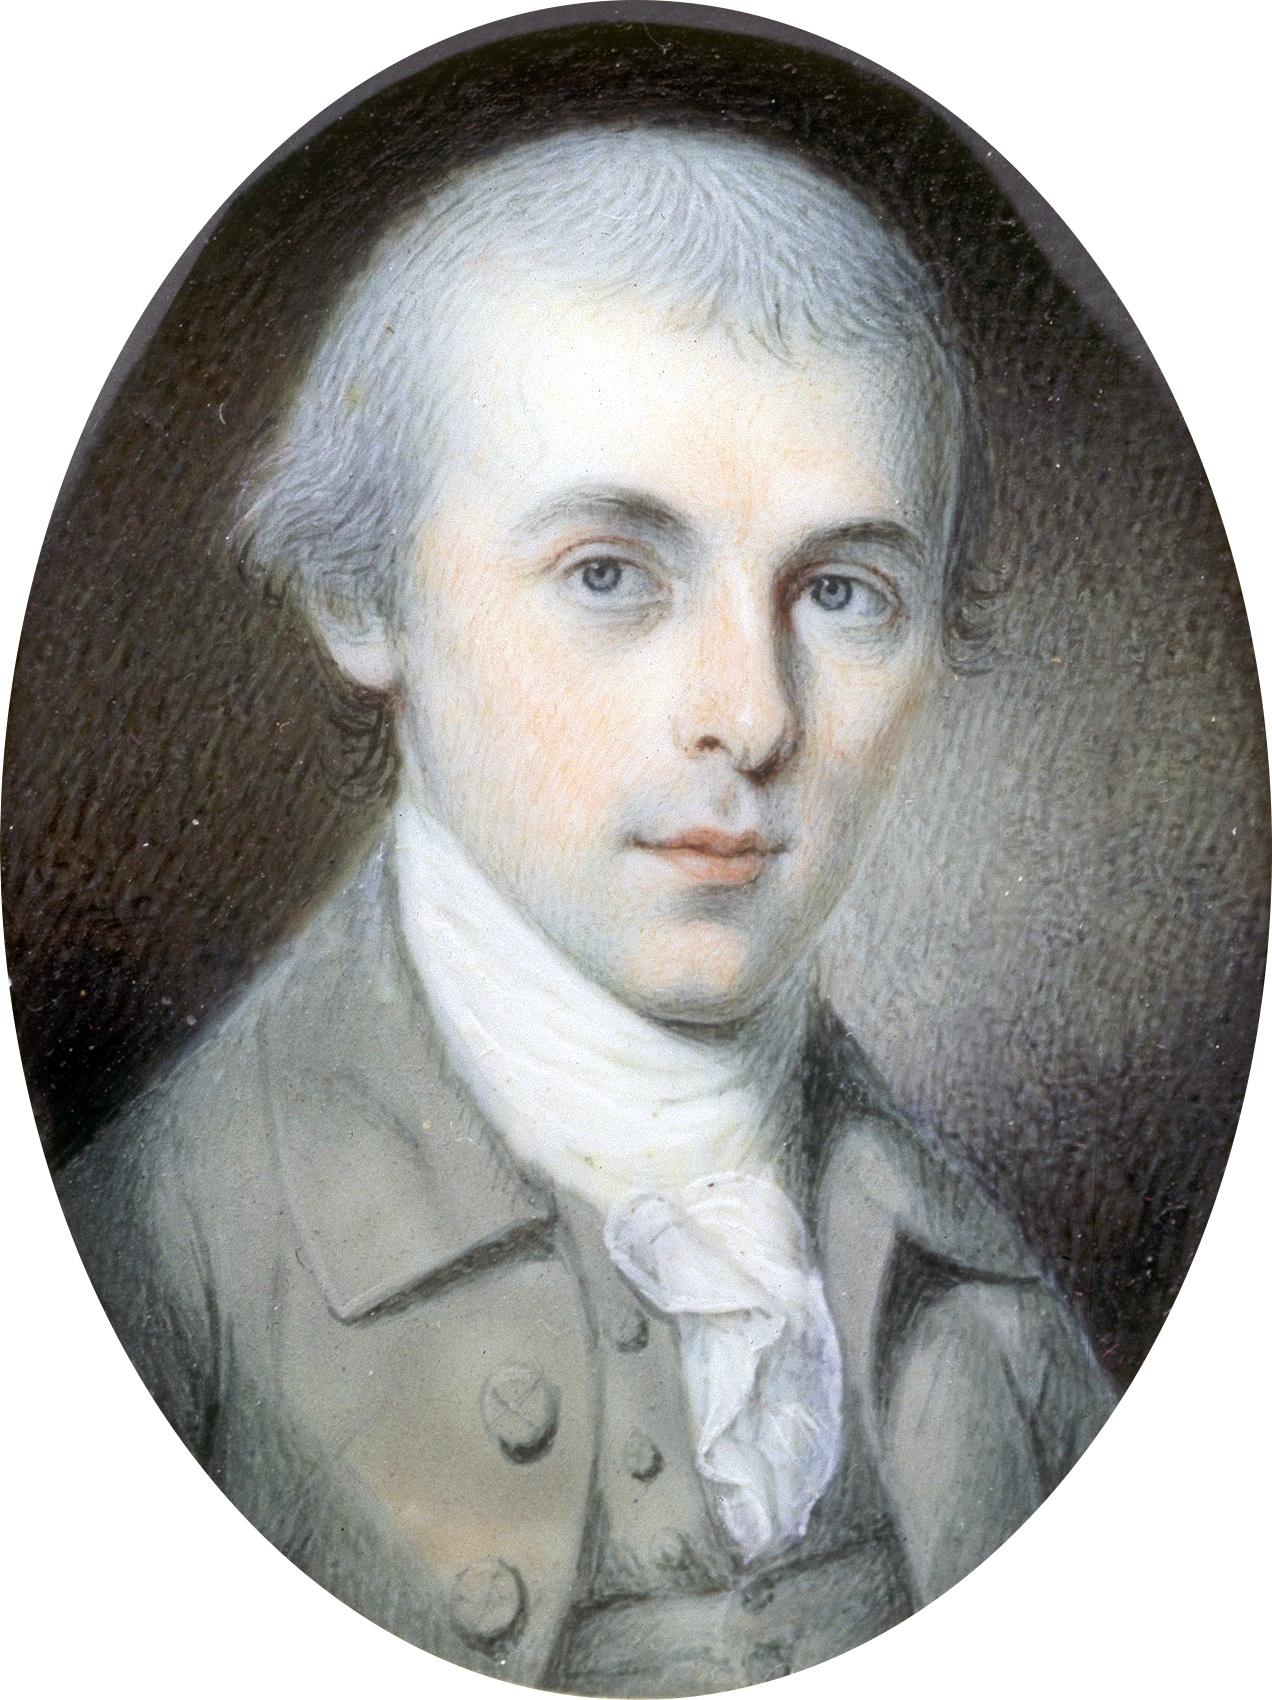 A picture of the author James Madison